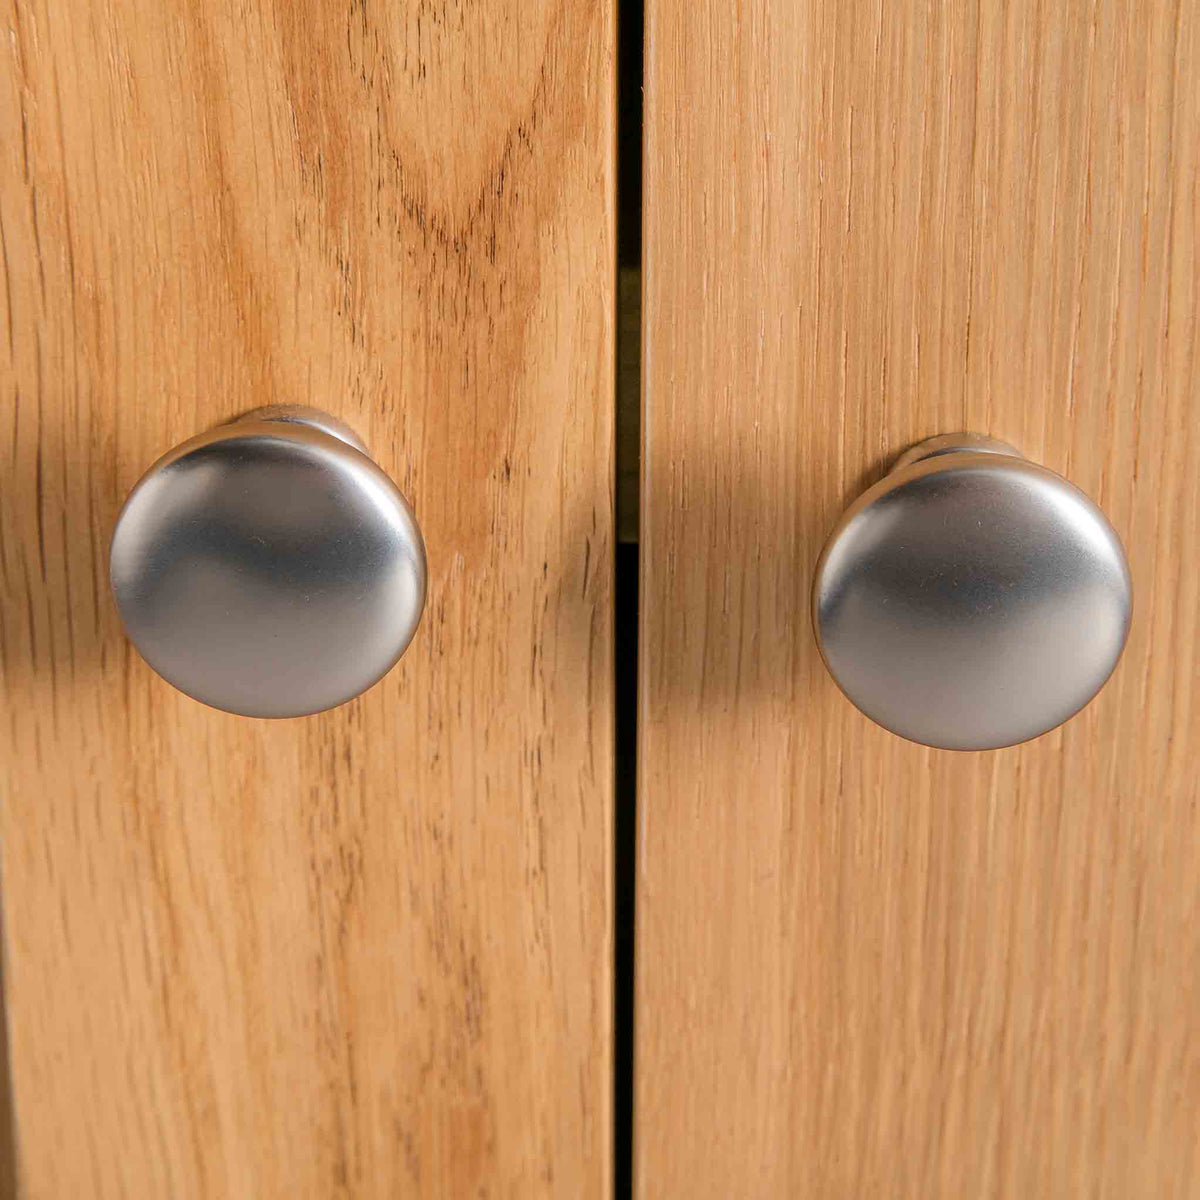 close up of metal round door knobs on the London Oak Mini Sideboard by Roseland Furniture.